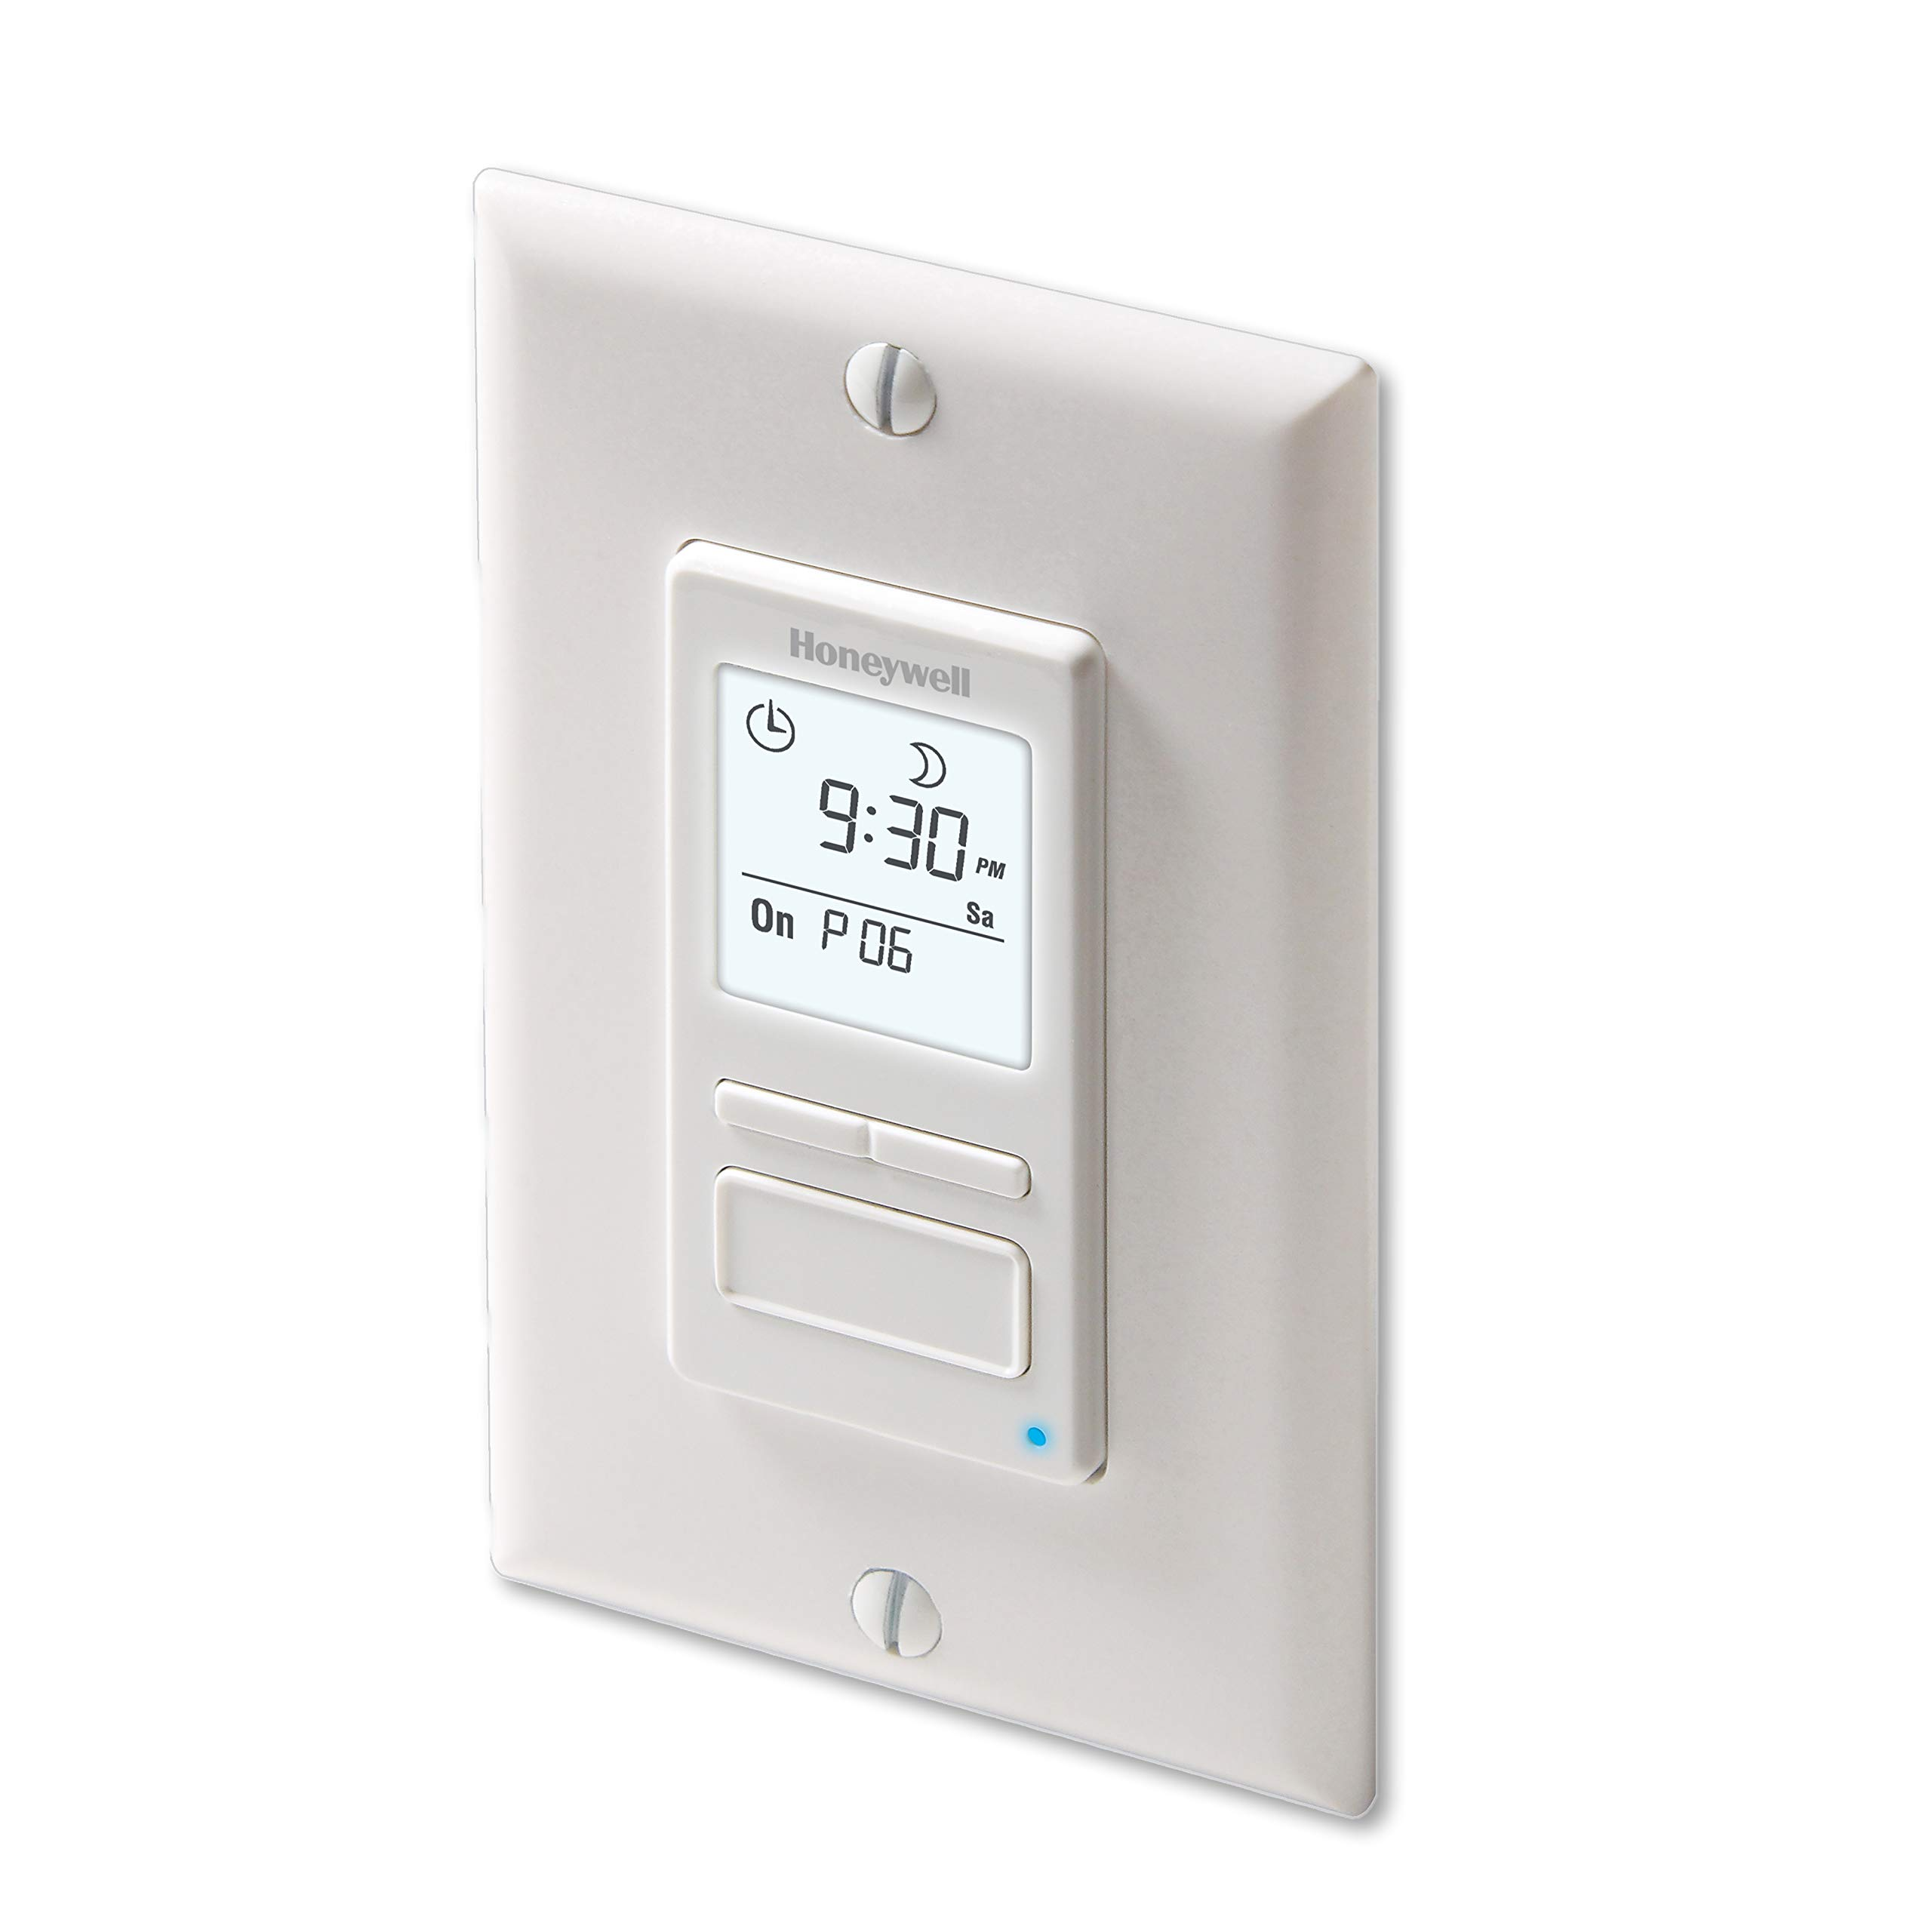 Honeywell Econoswitch RPLS740B Programmable Switch